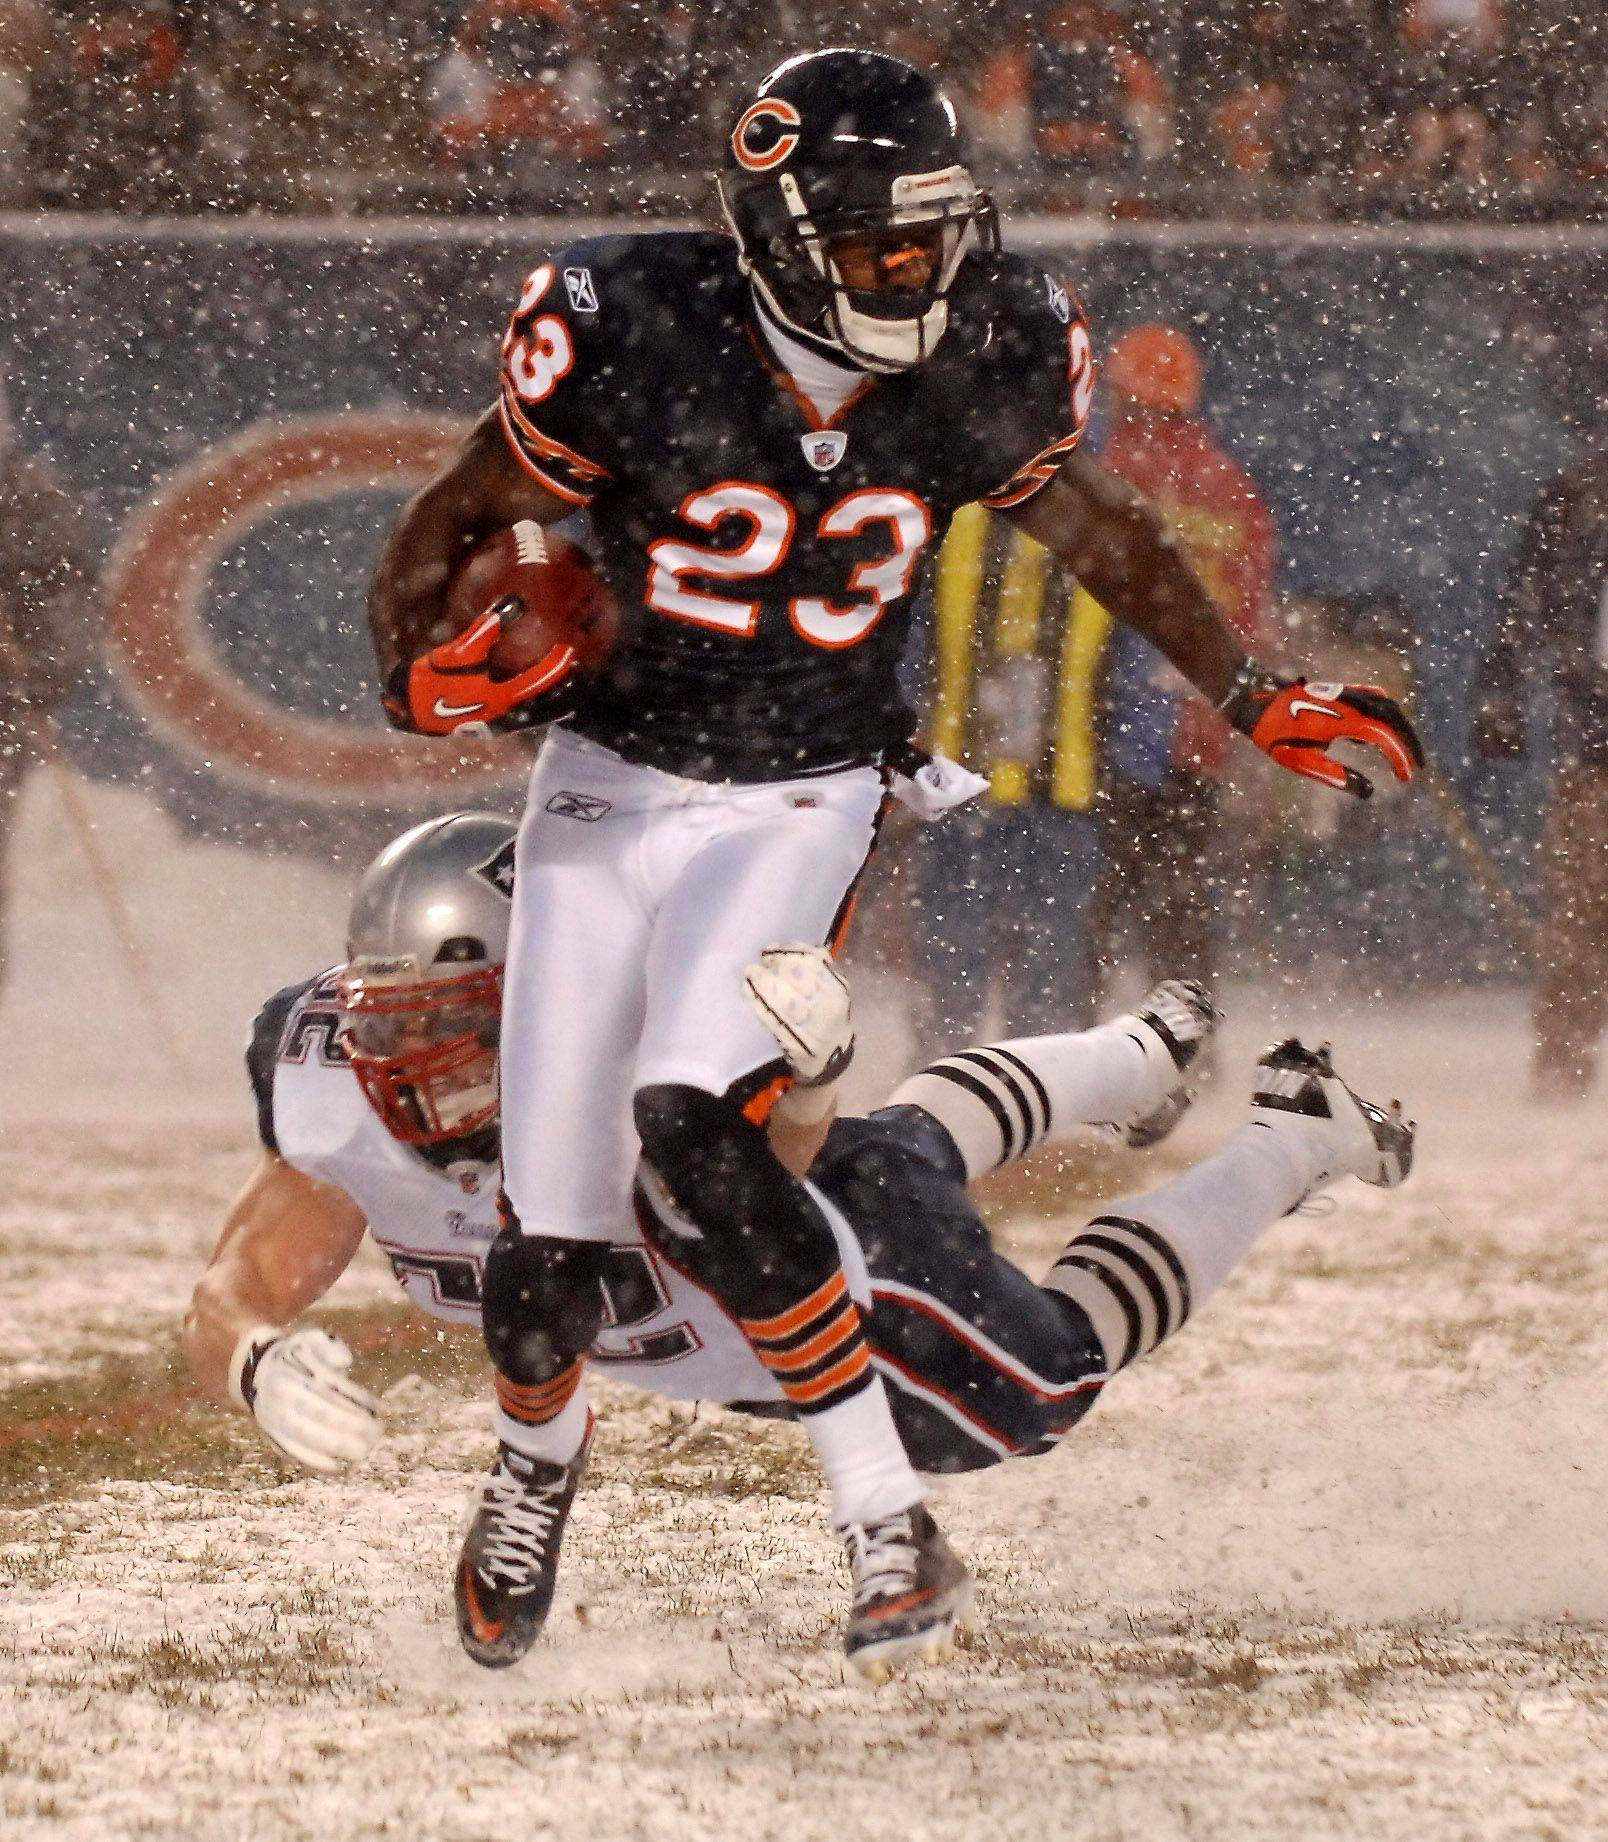 Chicago Bears kick returner Devin Hester breaks a tackle at Soldier Field.